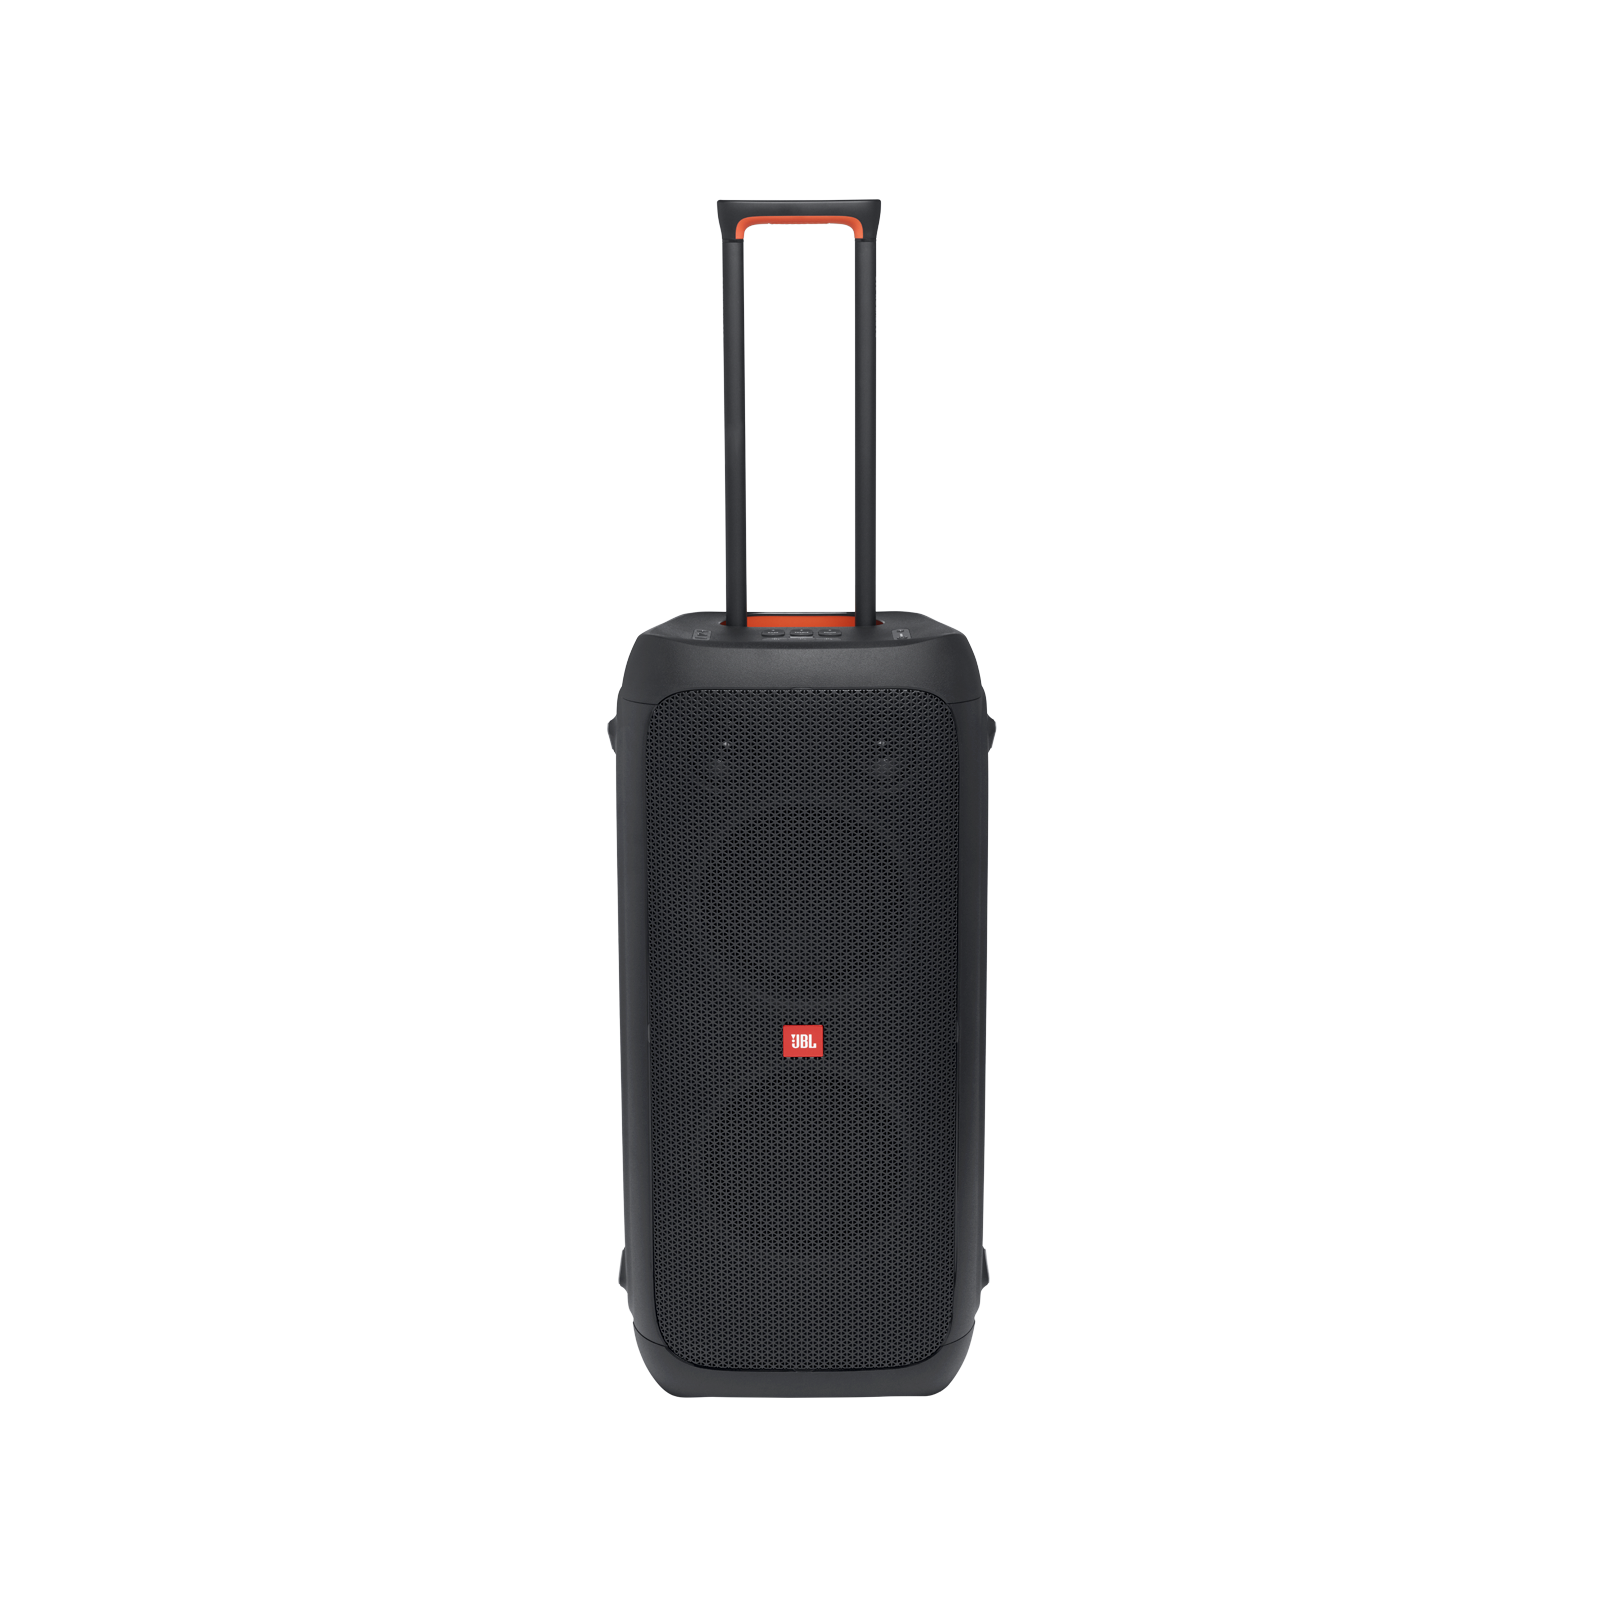 JBL Partybox 310 - Black - Portable party speaker with dazzling lights and powerful JBL Pro Sound - Front